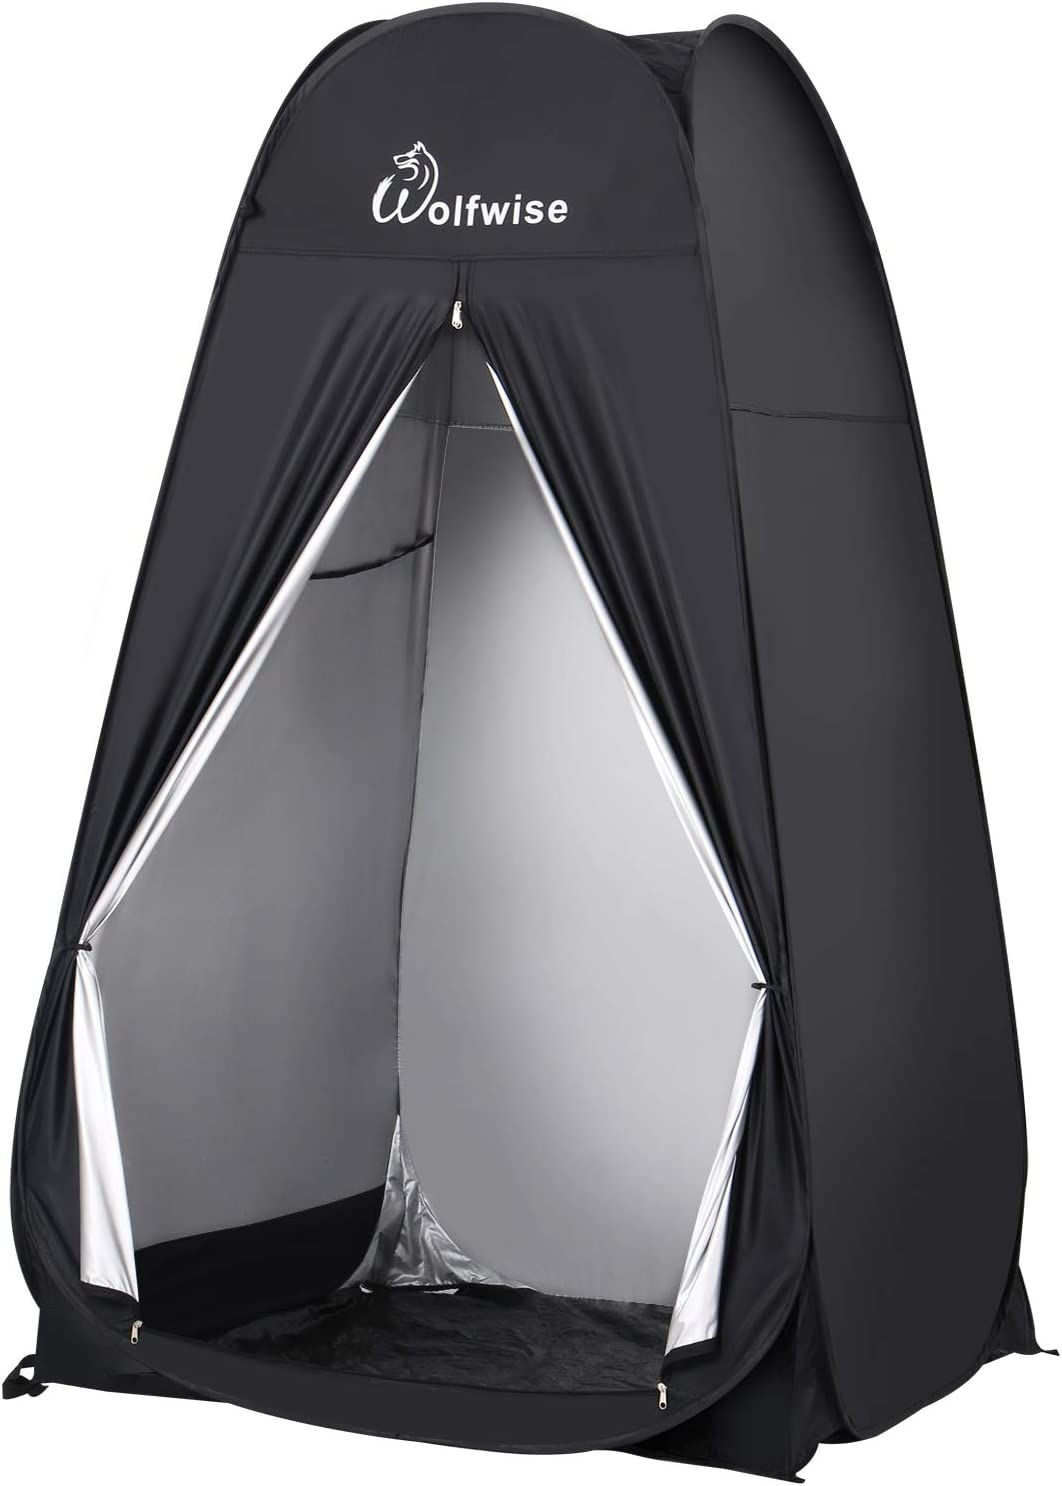 WolfWise 6.6FT Portable Pop Up Shower Privacy Tent Spacious Dressing Changing Room for Toilet Camping Biking Beach